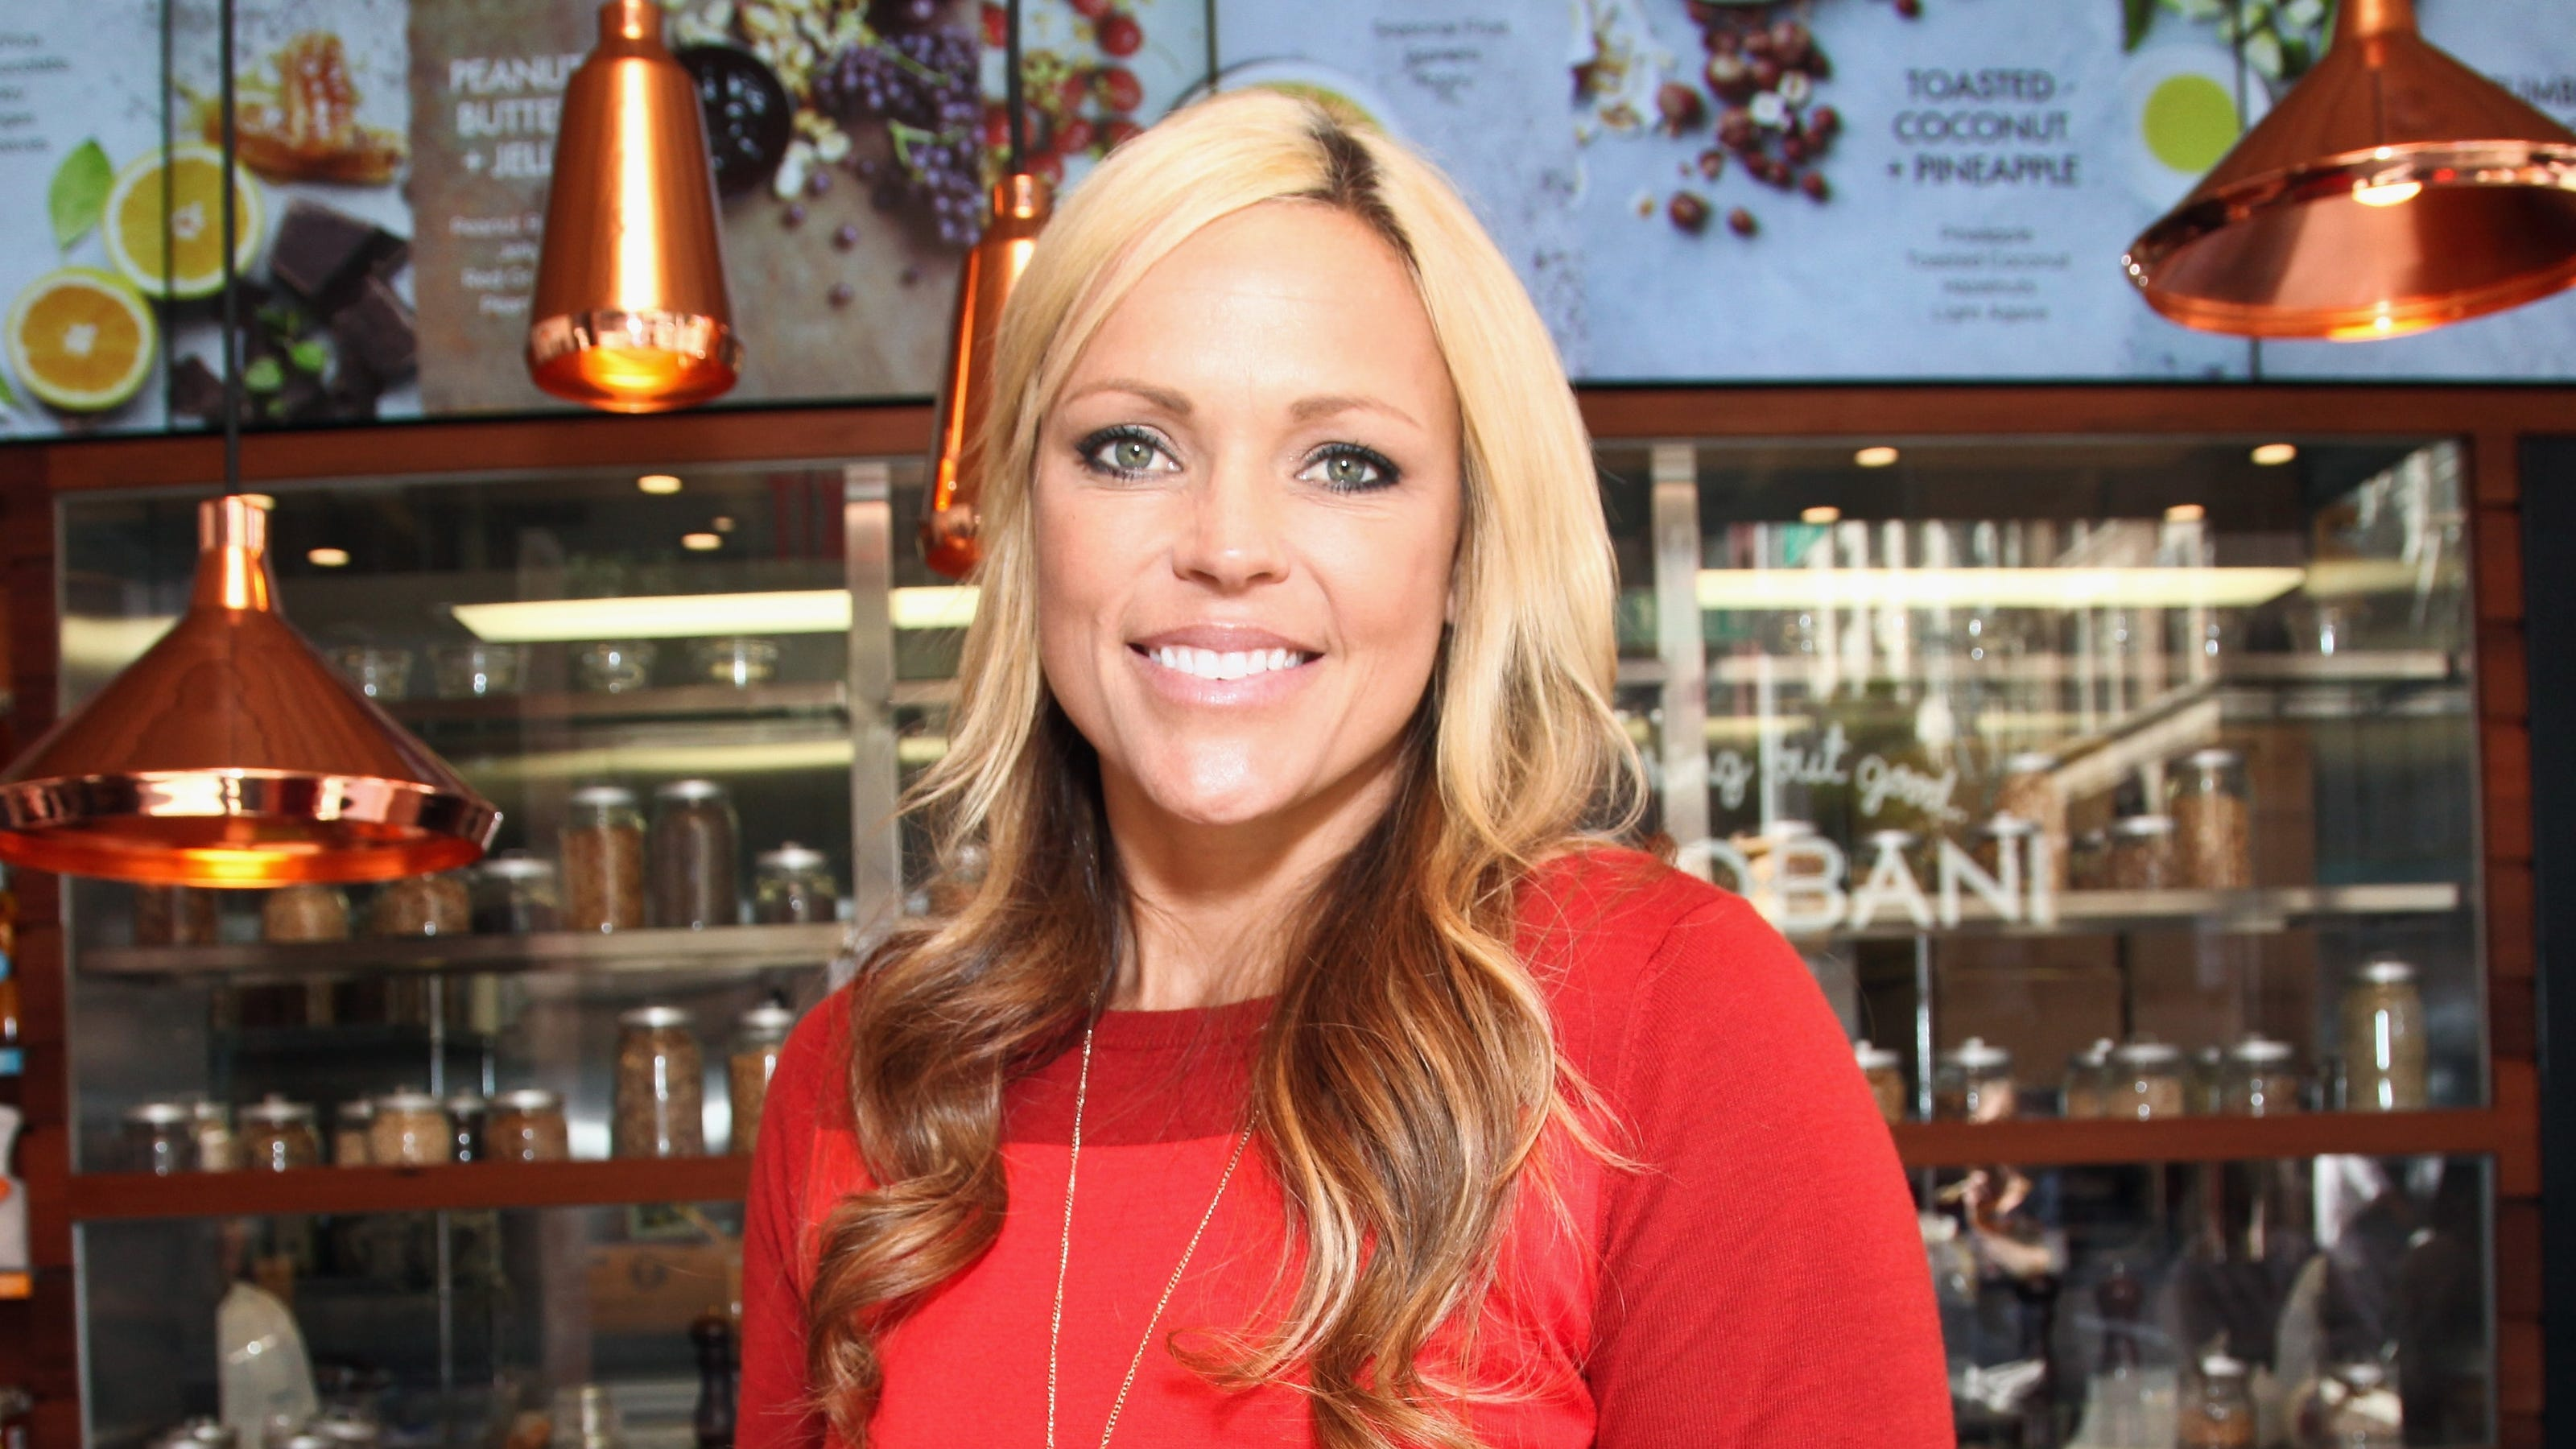 jennie finch biography 2018-6-28  horoscope and astrology data of jennie finch born on 3 september 1980 bellflower, california, with biography.